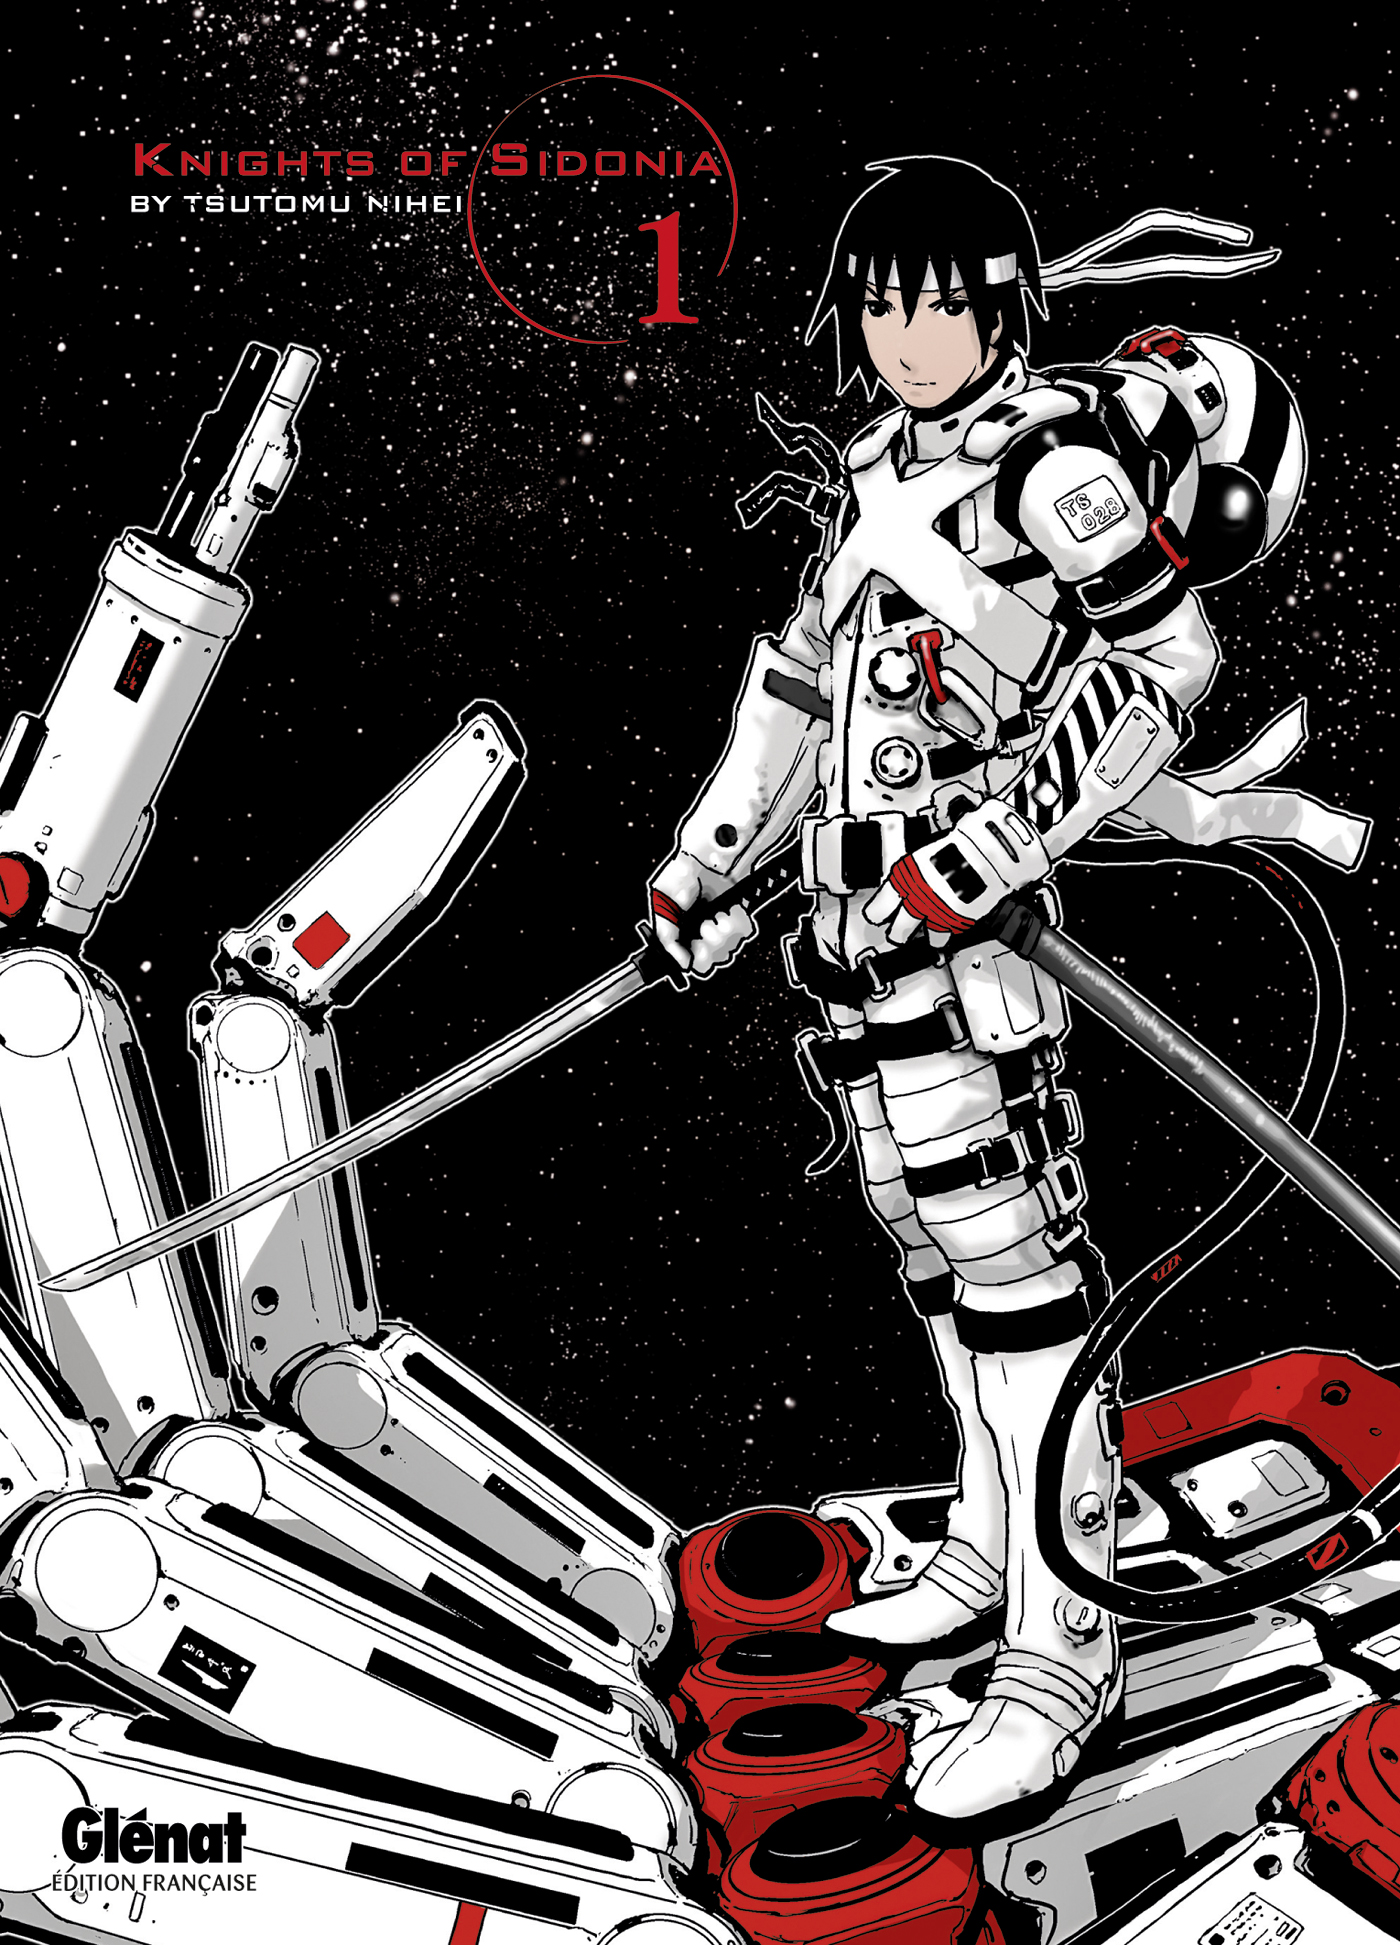 Chronique d'animé Japonais - Page 12 Knights-of-sidonia-manga-volume-1-simple-66464